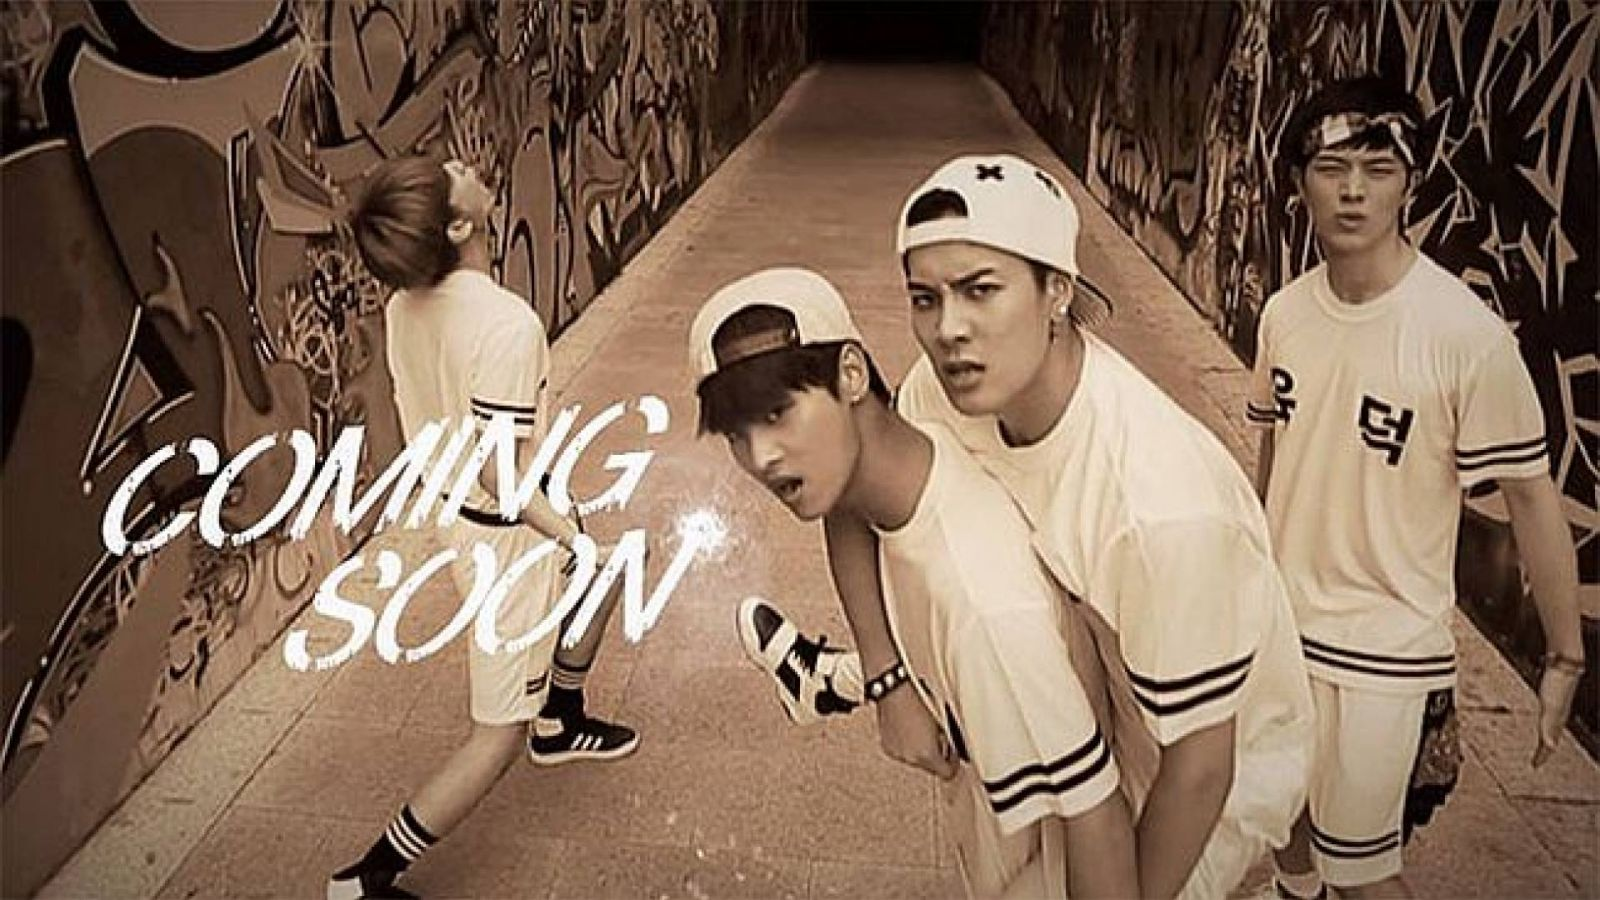 Stress Come On do Big Byung © Hitmaker